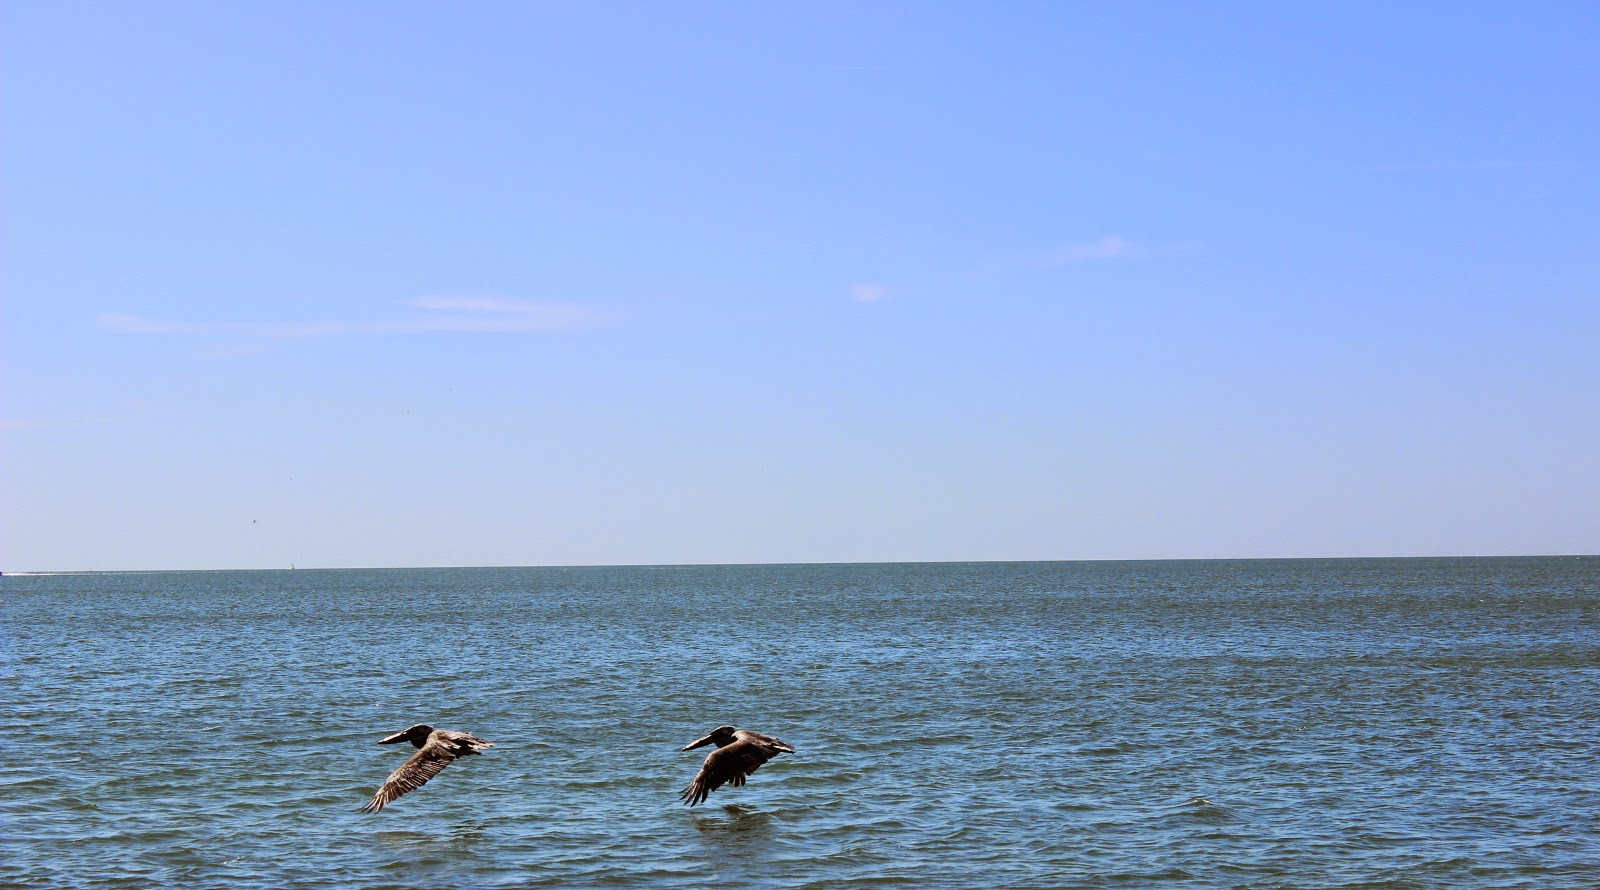 pelicans flying over St. Pete Beach, FL